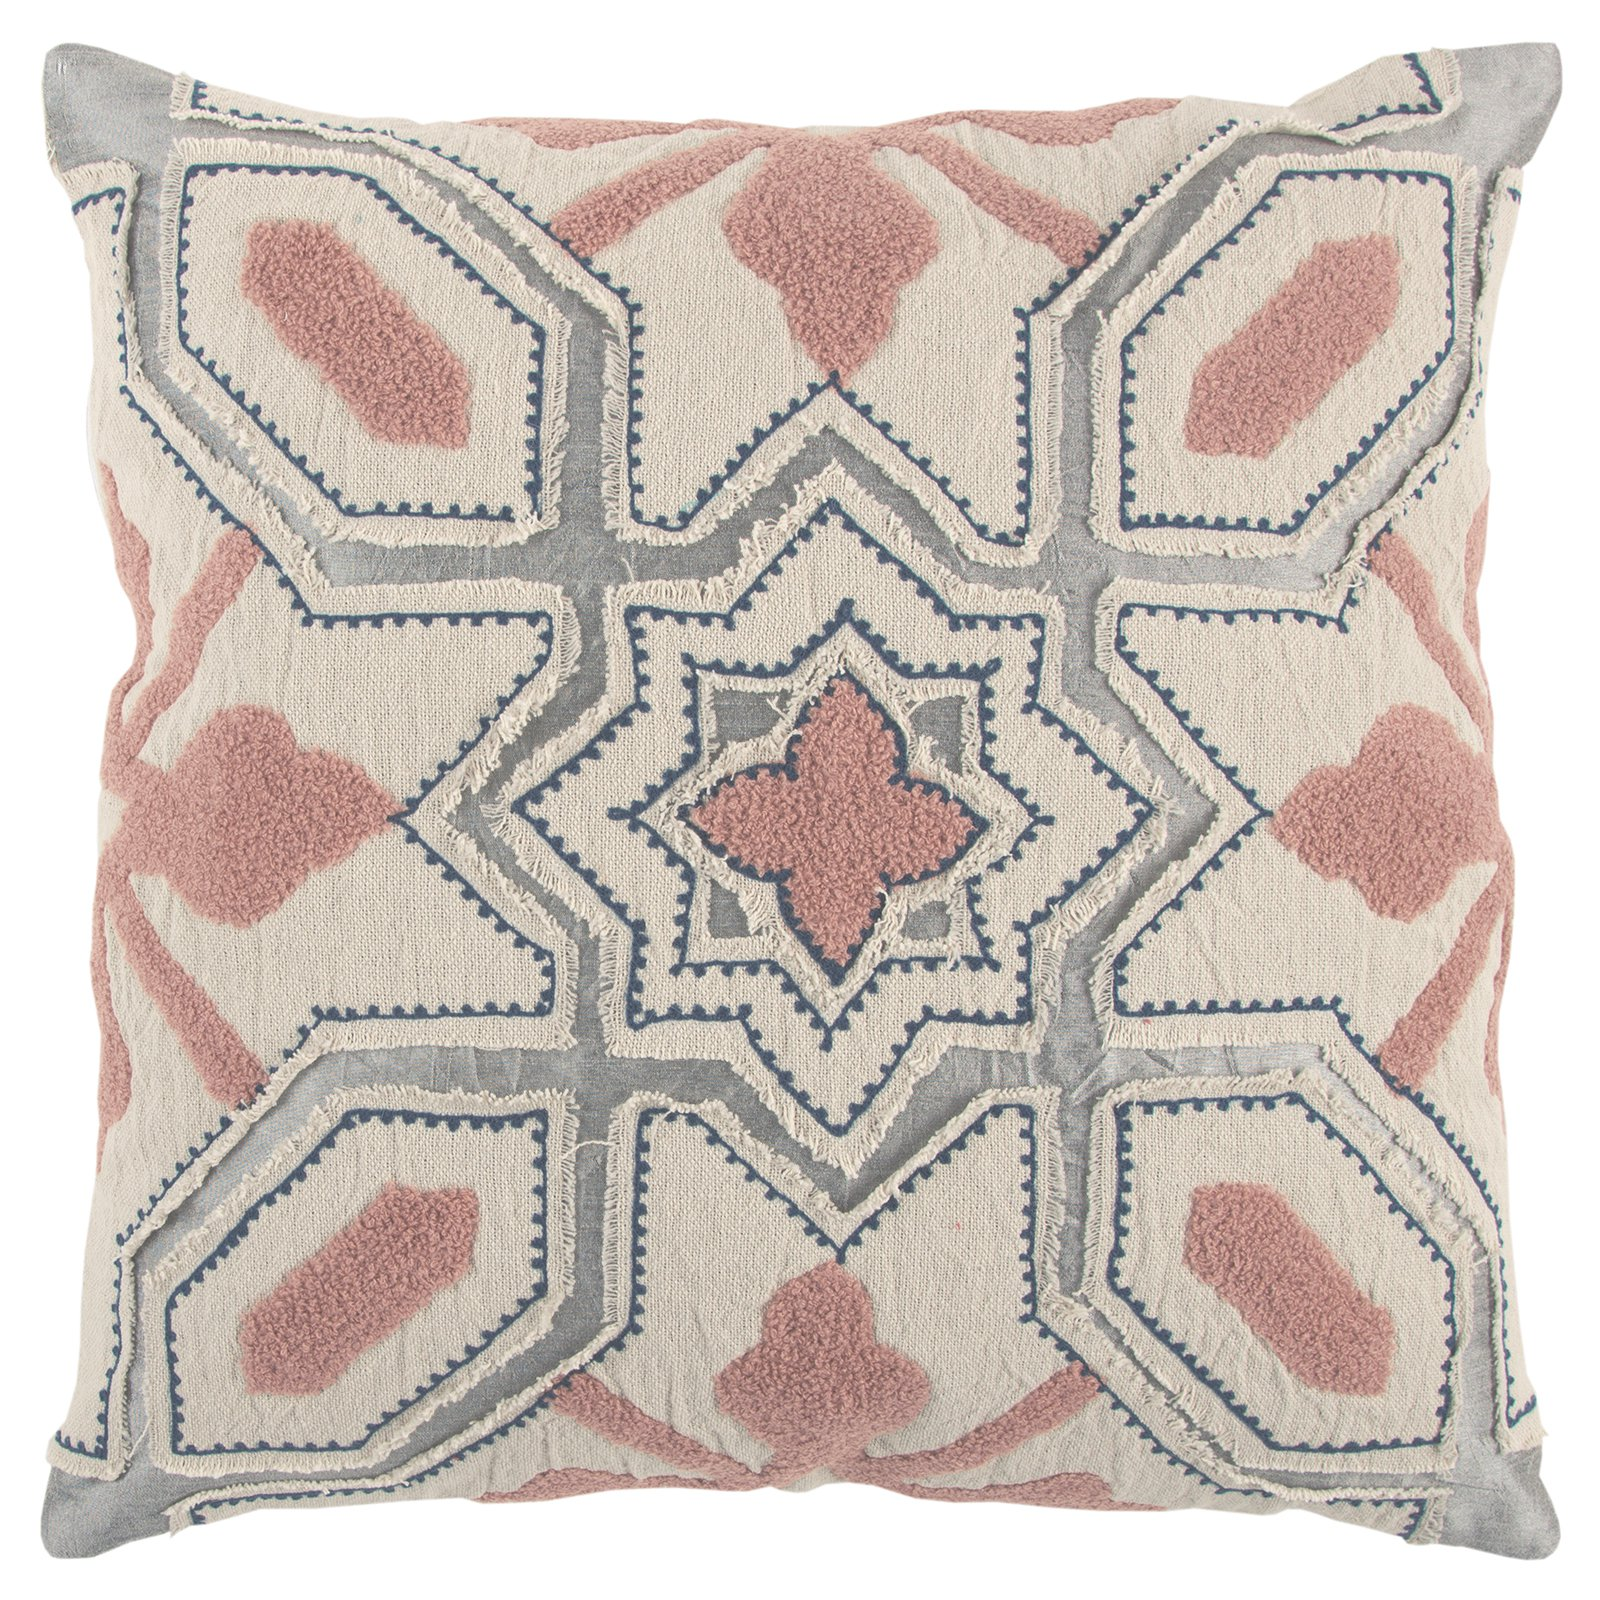 Rizzy Home Deconstructed Geometric Decorative Pillow